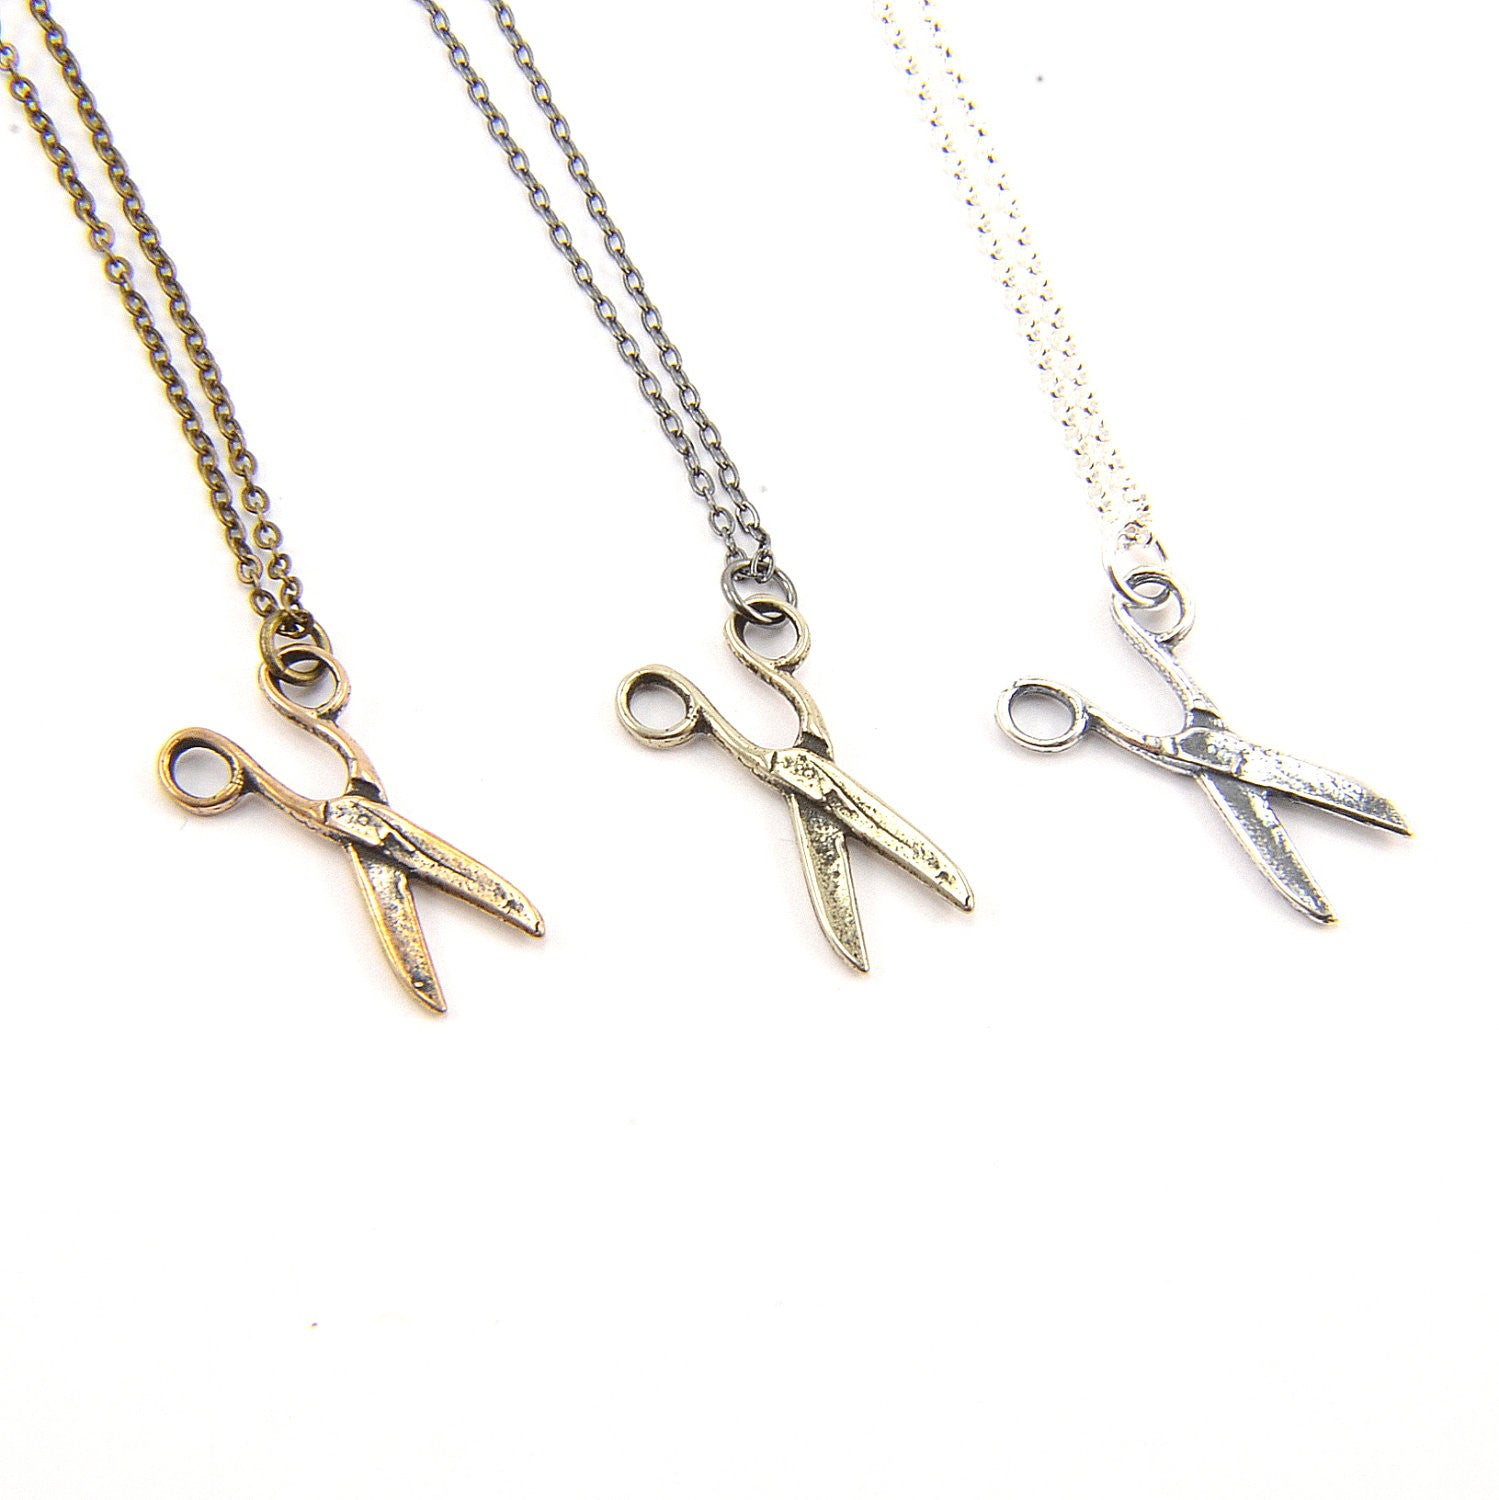 Scissors Necklace - Gwen Delicious Jewelry Designs